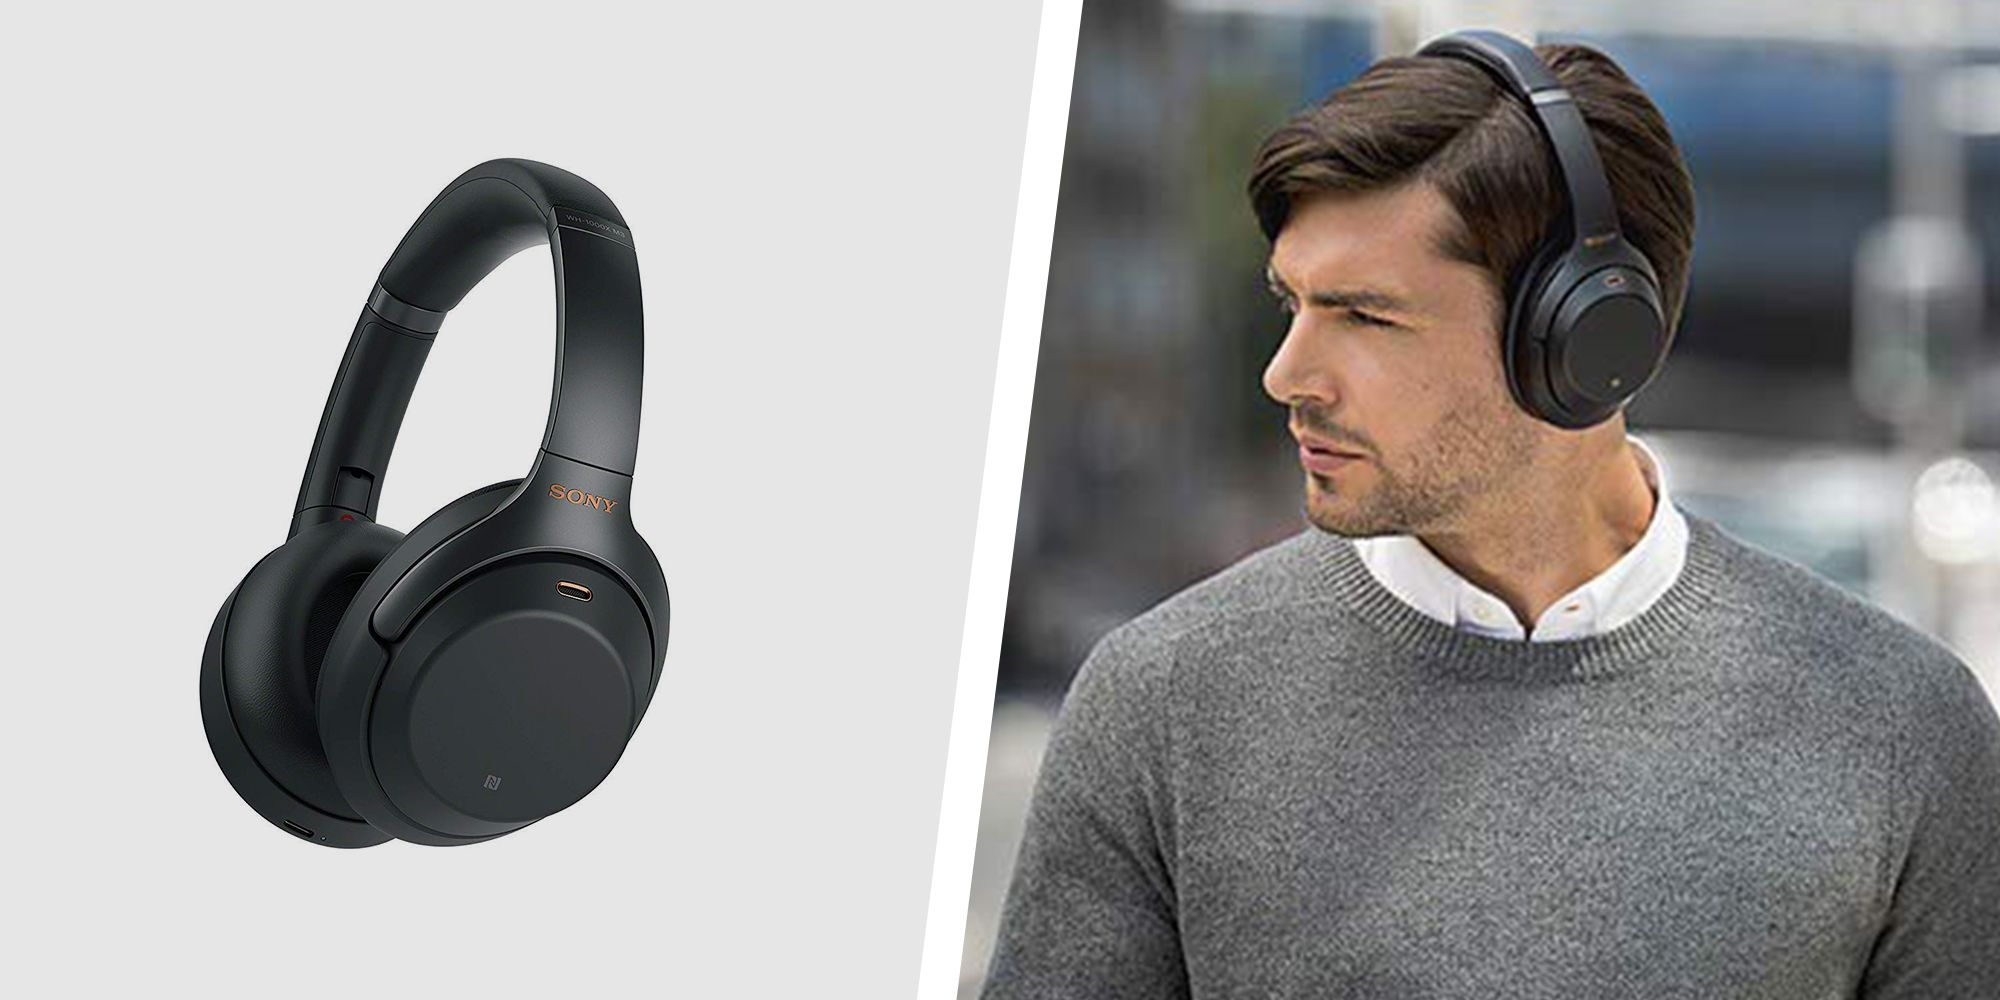 Sony Noise-Cancelling Headphones Are $50 Off On Amazon Today